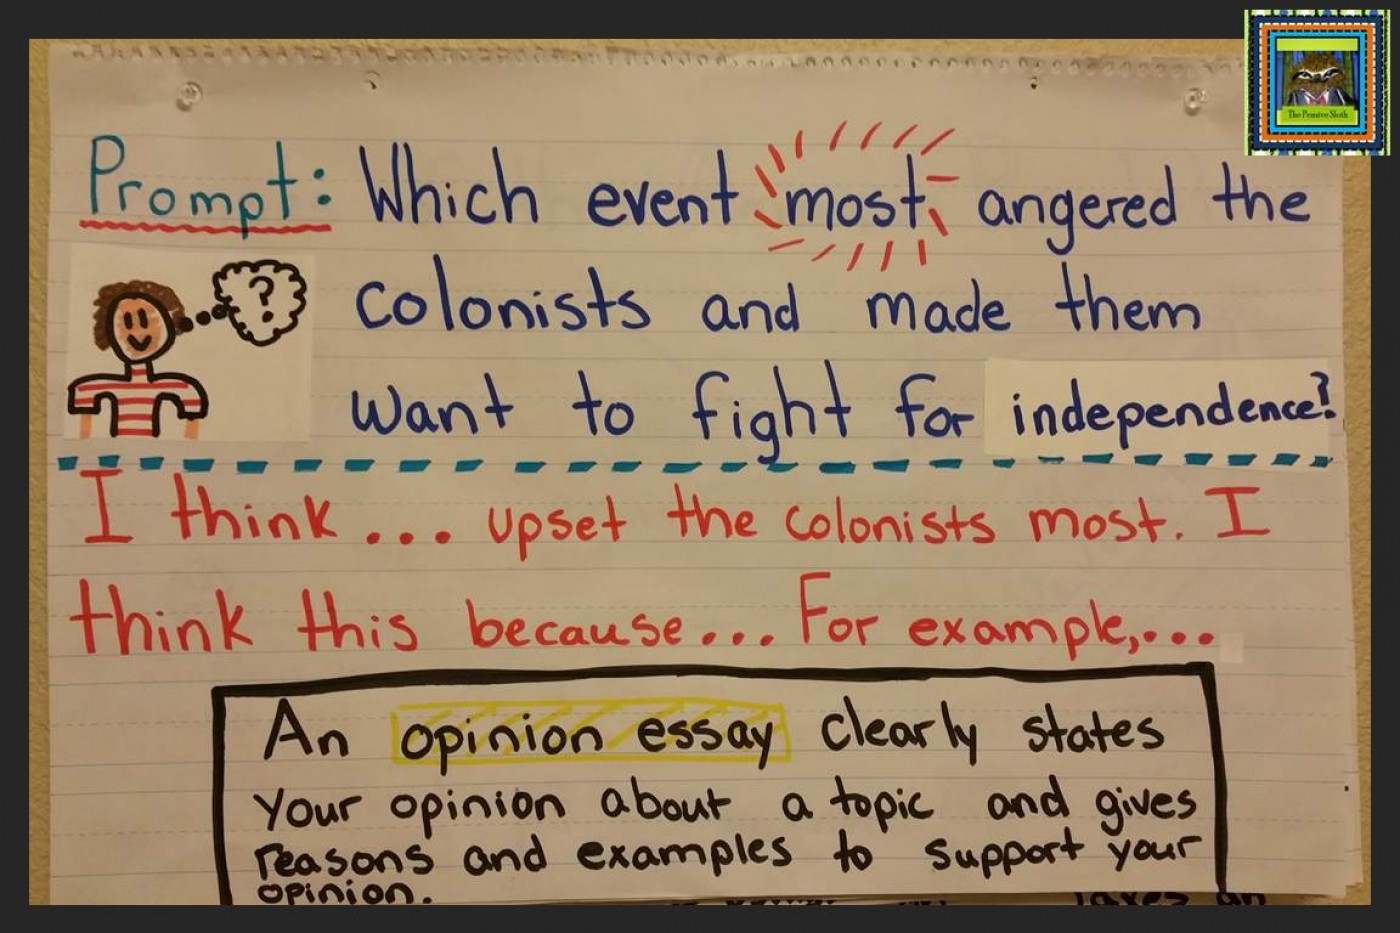 006 What Caused The American Revolution Essay Slide21 Stunning Dbq 1400